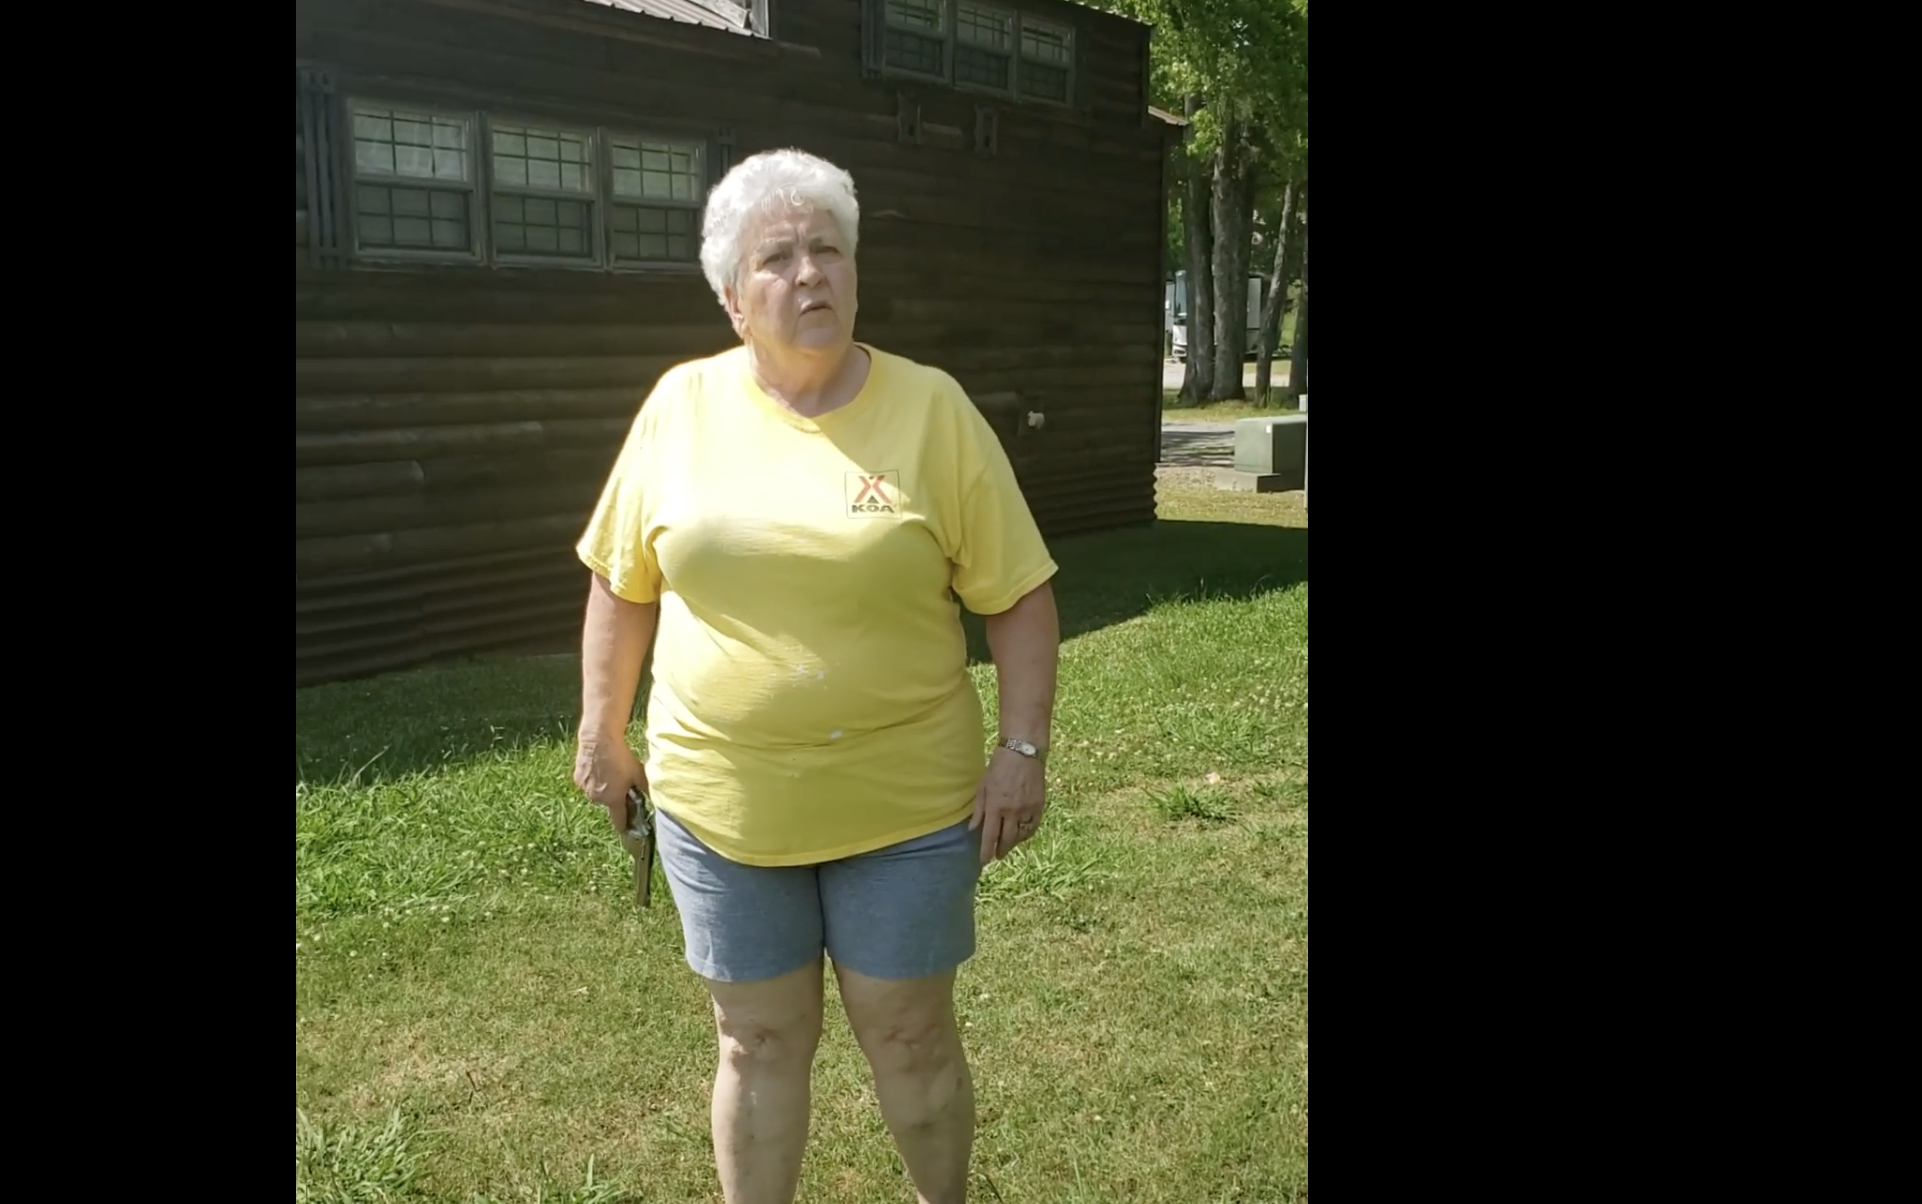 A white woman pulled a gun on a black couple for having a picnic. Now she could face jail time.